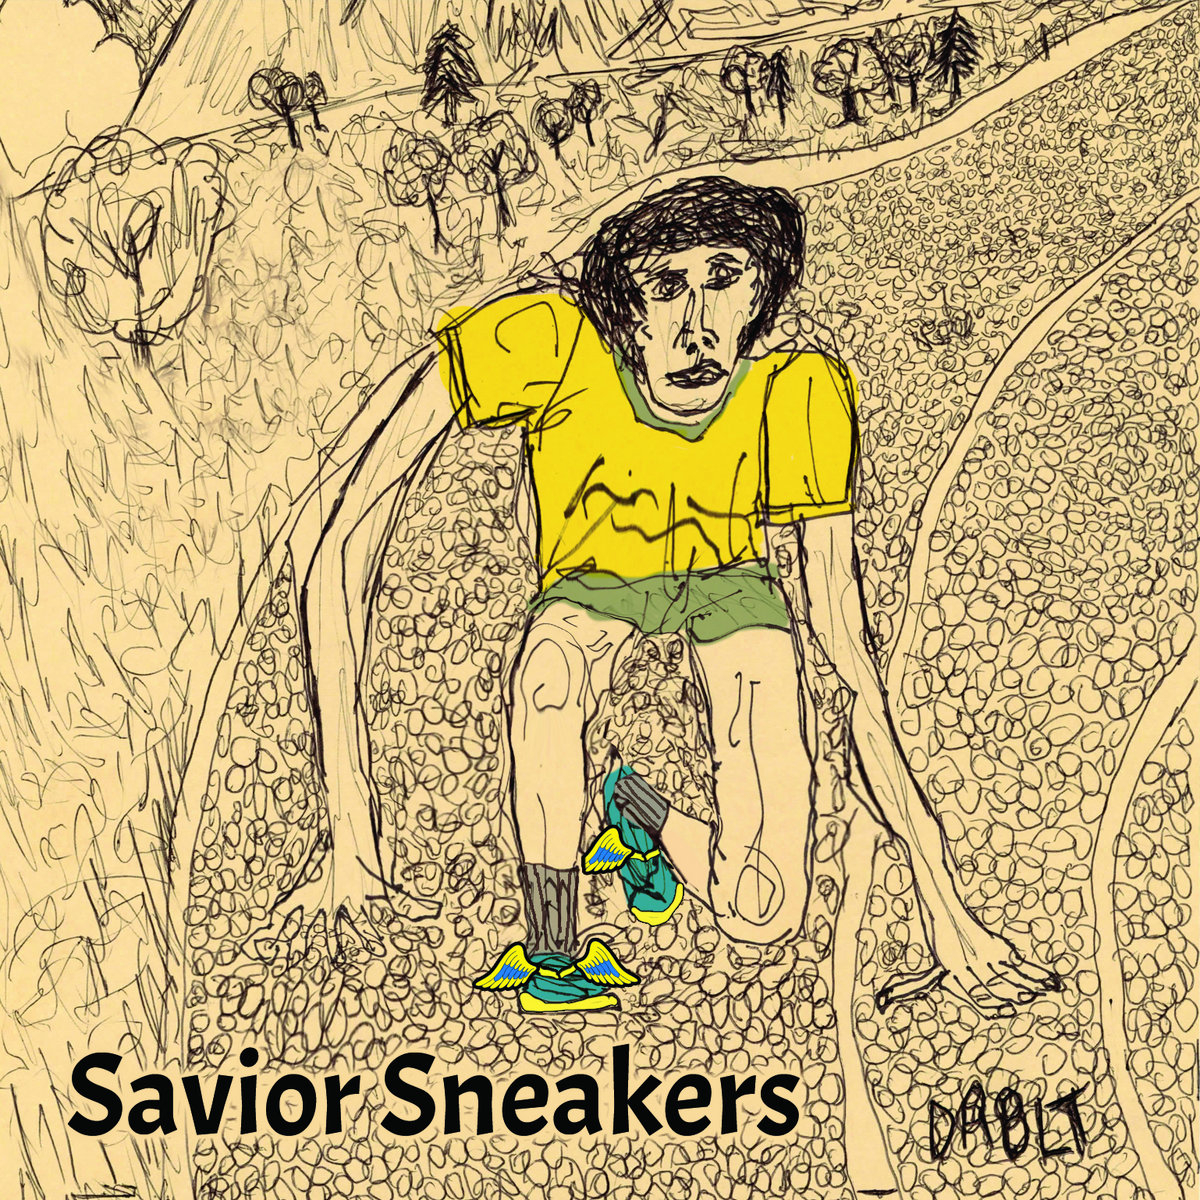 Savior Sneakers (word to Lil NAS x) by Dr BLT